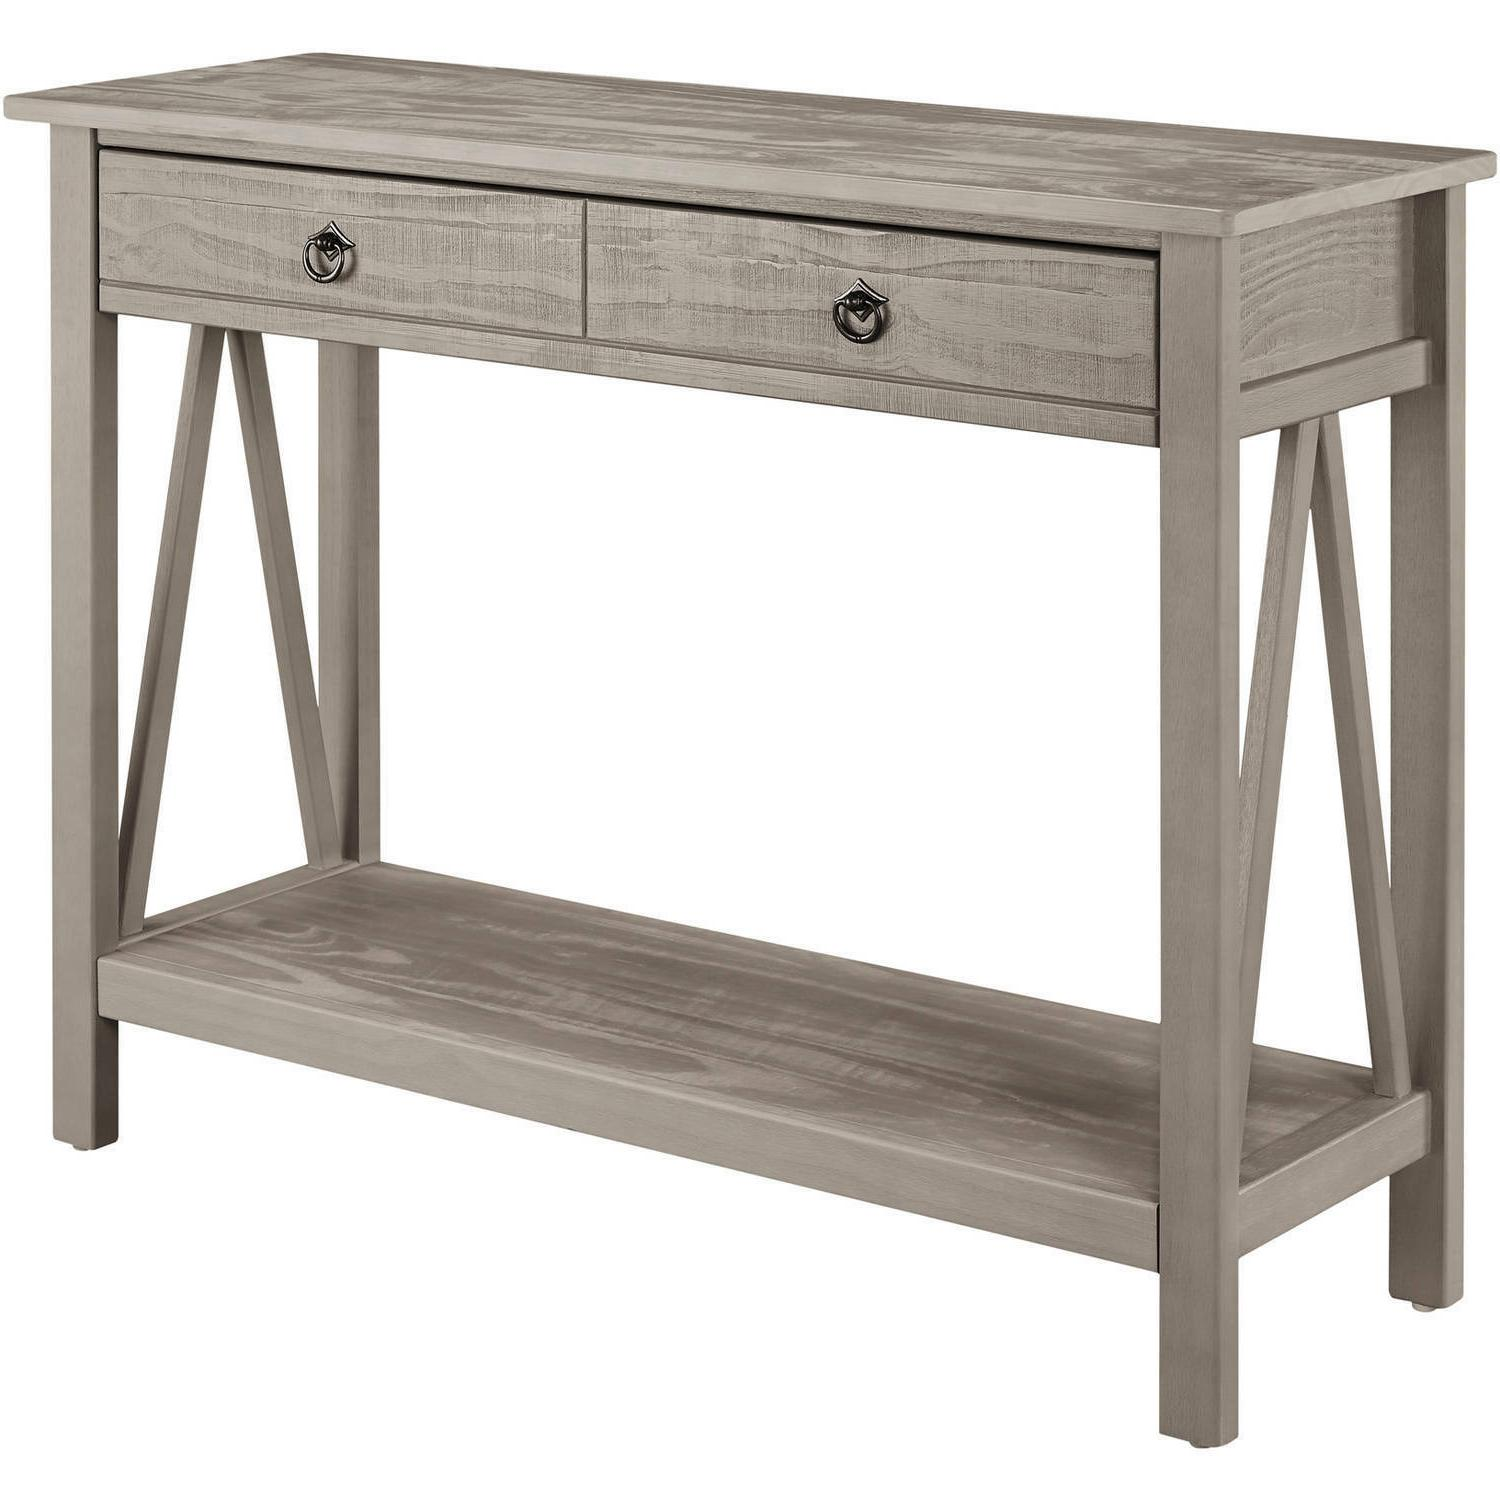 Entryway Table Narrow Wood Accent Tables For Hallway